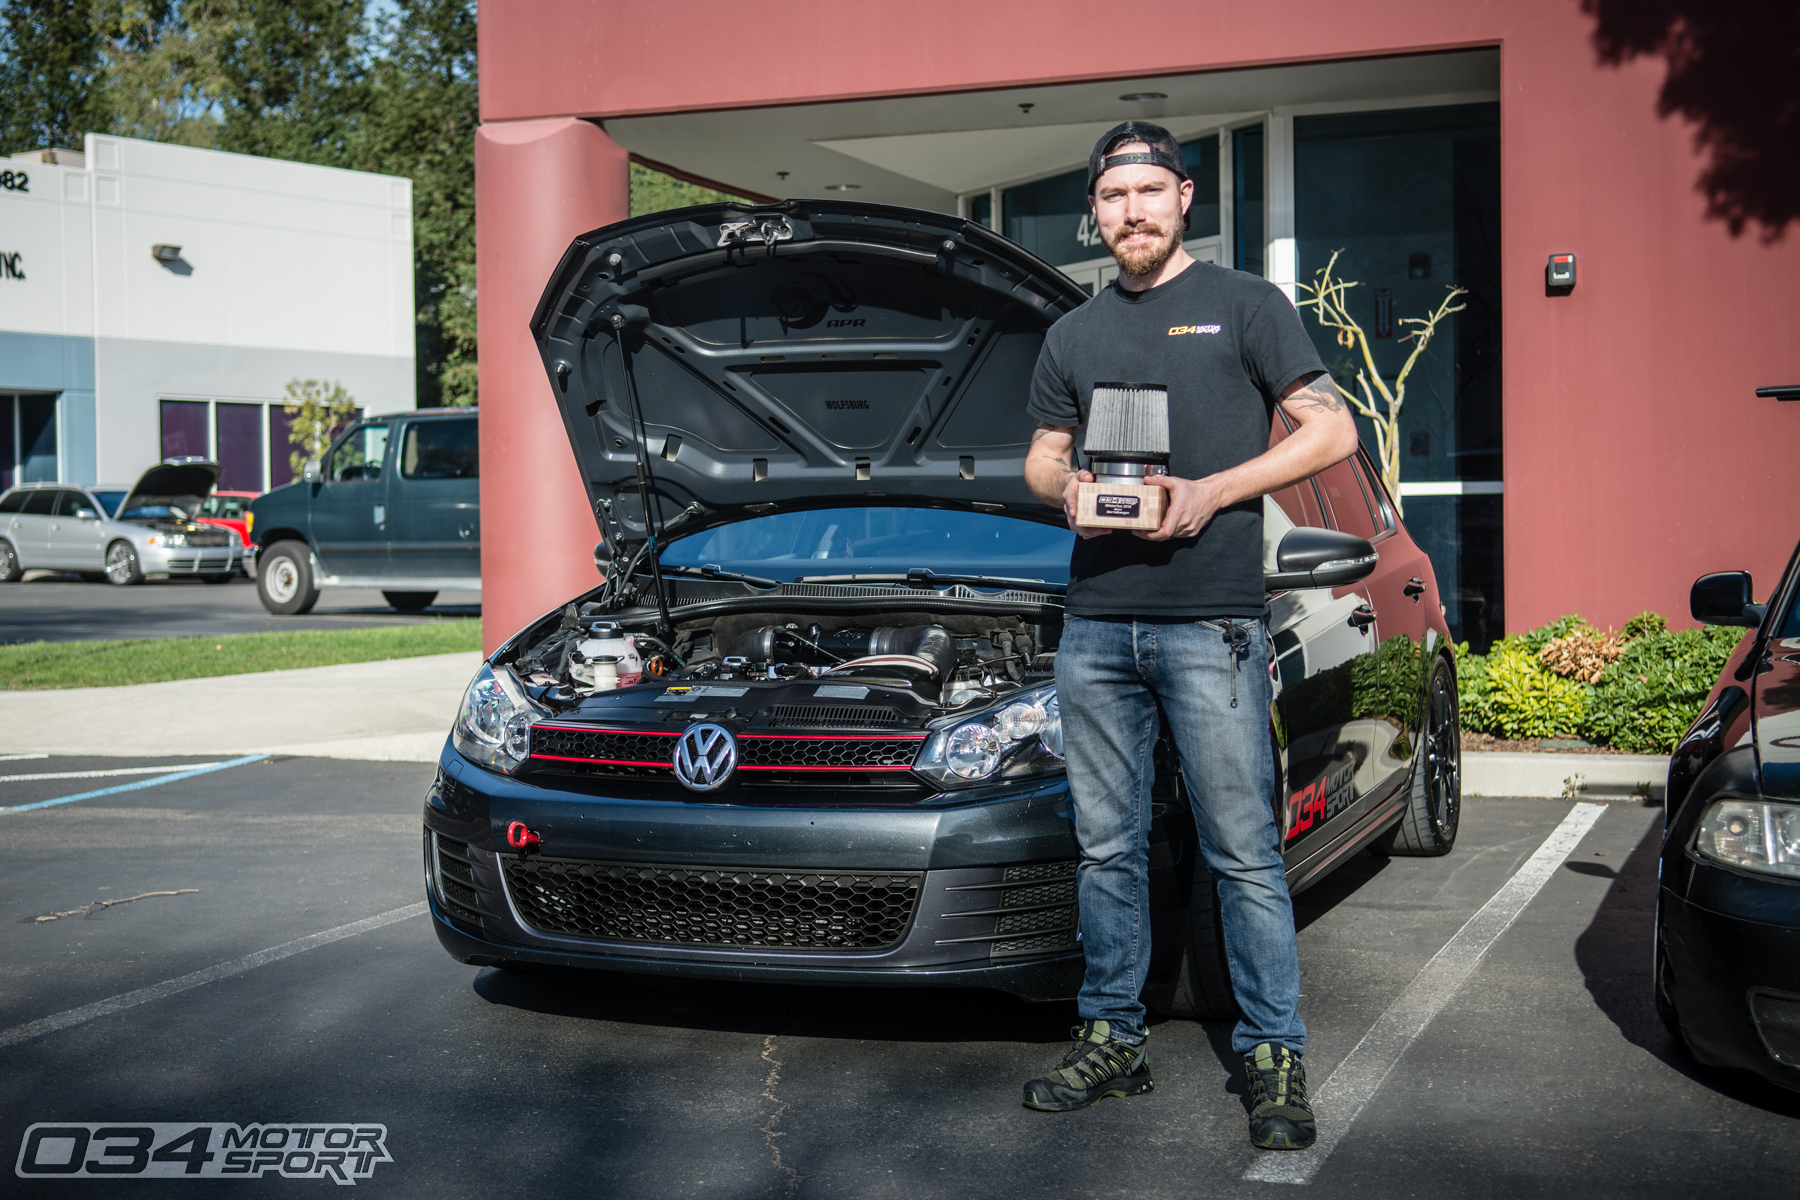 Josh and his MkVI 2013 Volkswagen GTI winning Best Volkswagen at WinterFest 2018